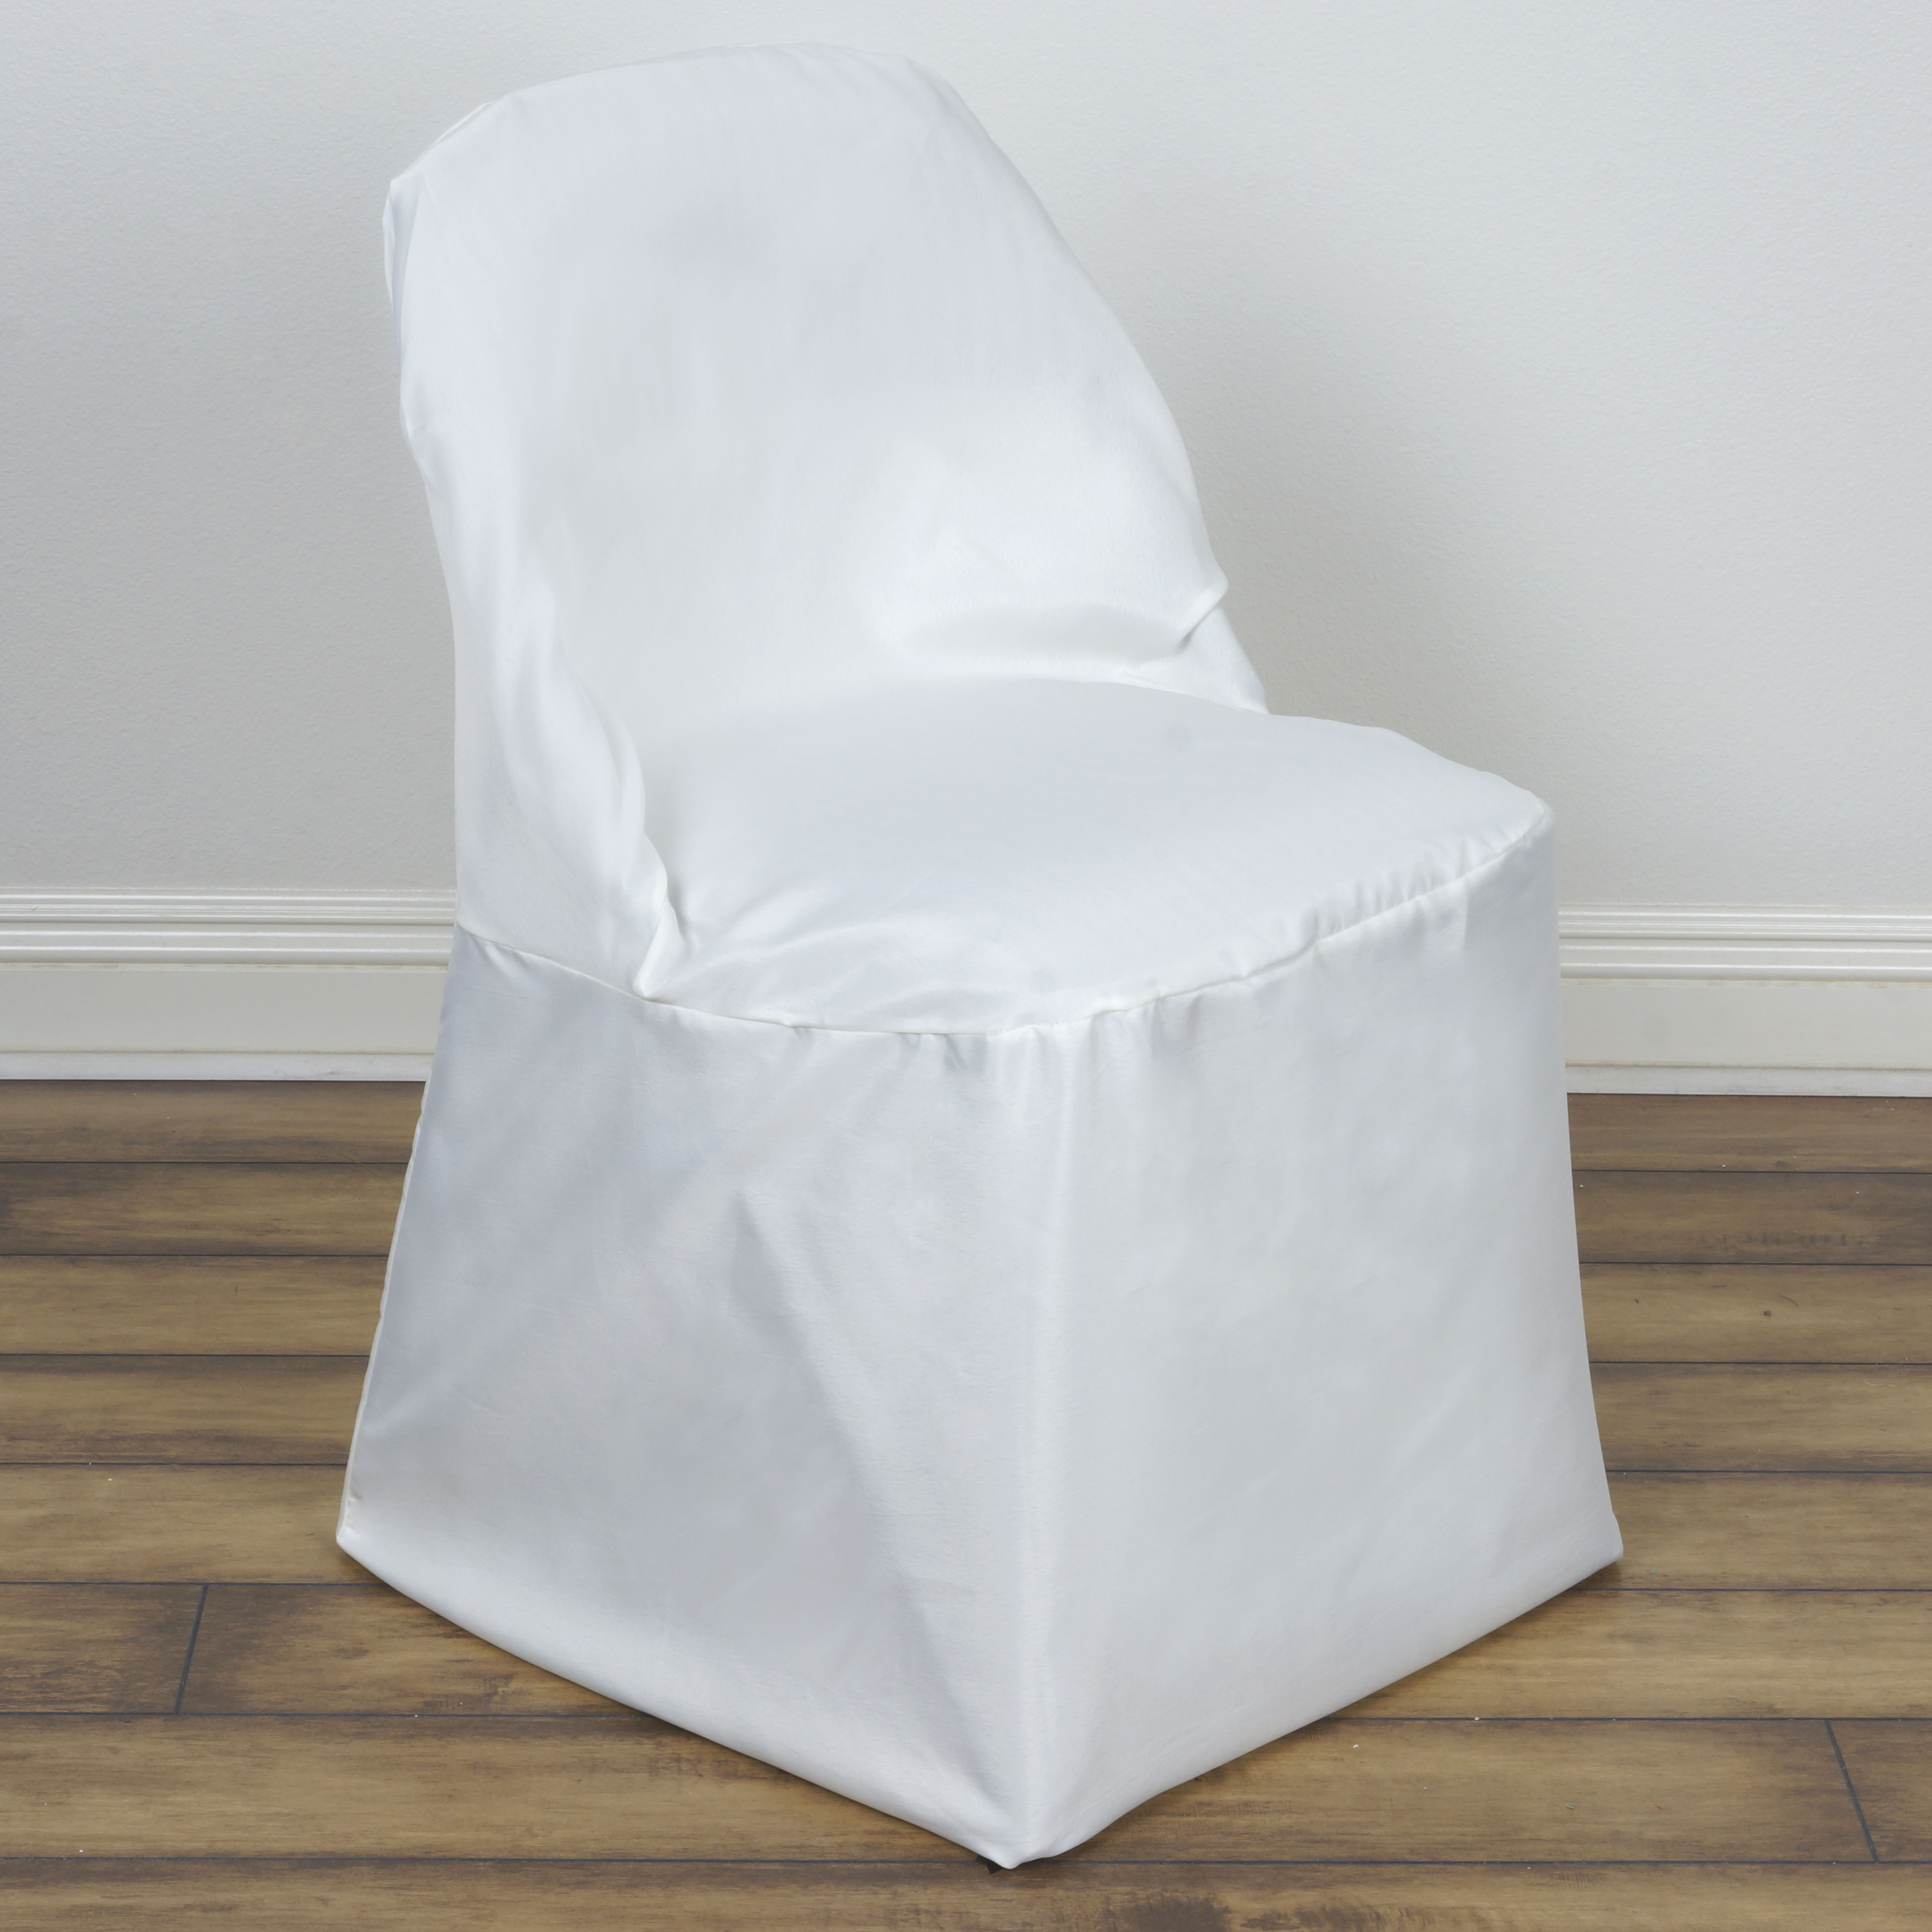 100 pcs POLYESTER ROUND FOLDING CHAIR COVERS Wholesale Discount Wedding Suppl